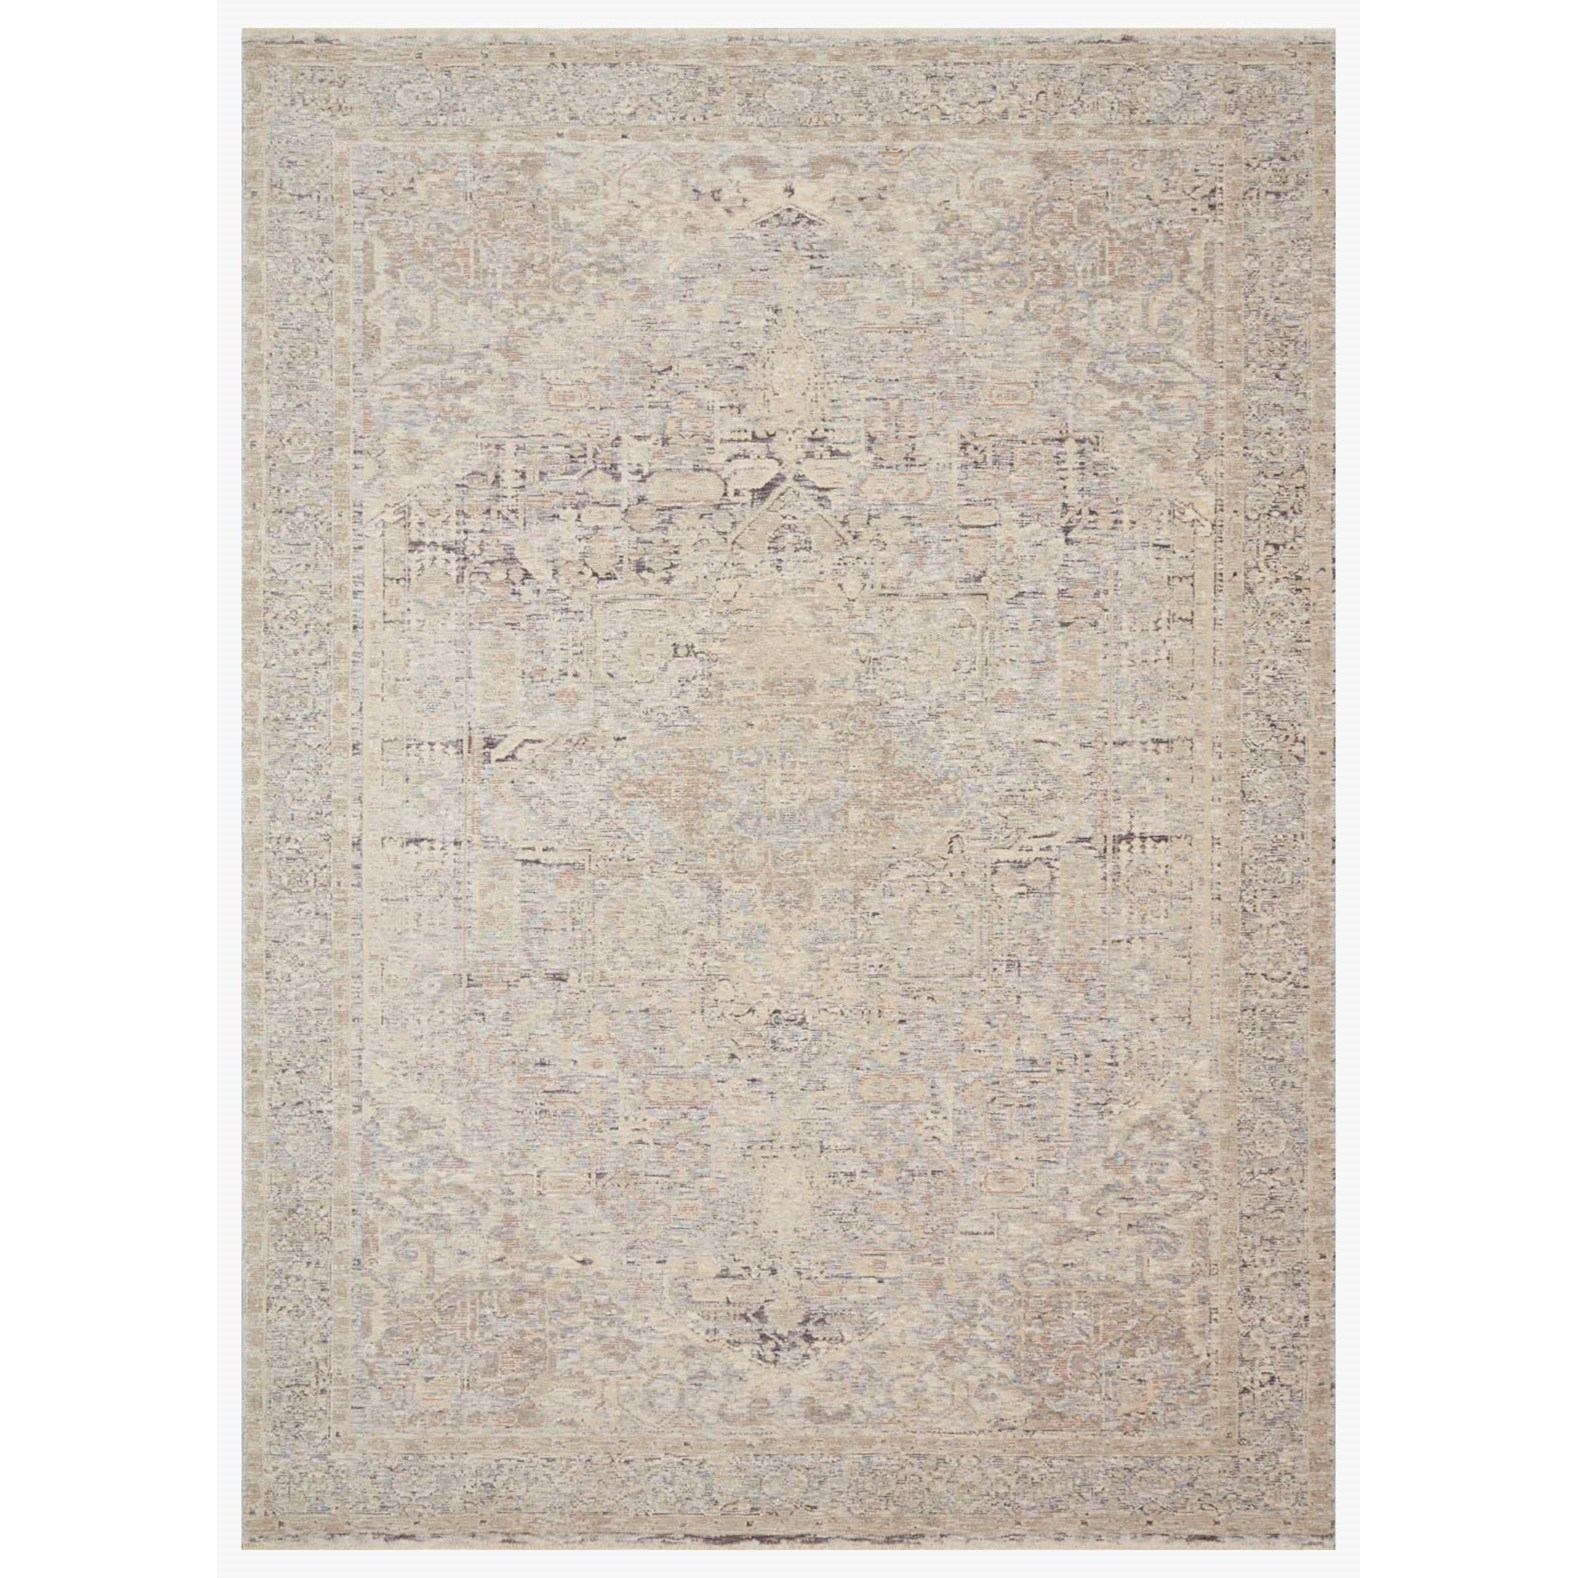 """Faye 9'6"""" x 13'1"""" Ivory / Multi Rug by Loloi Rugs at Virginia Furniture Market"""